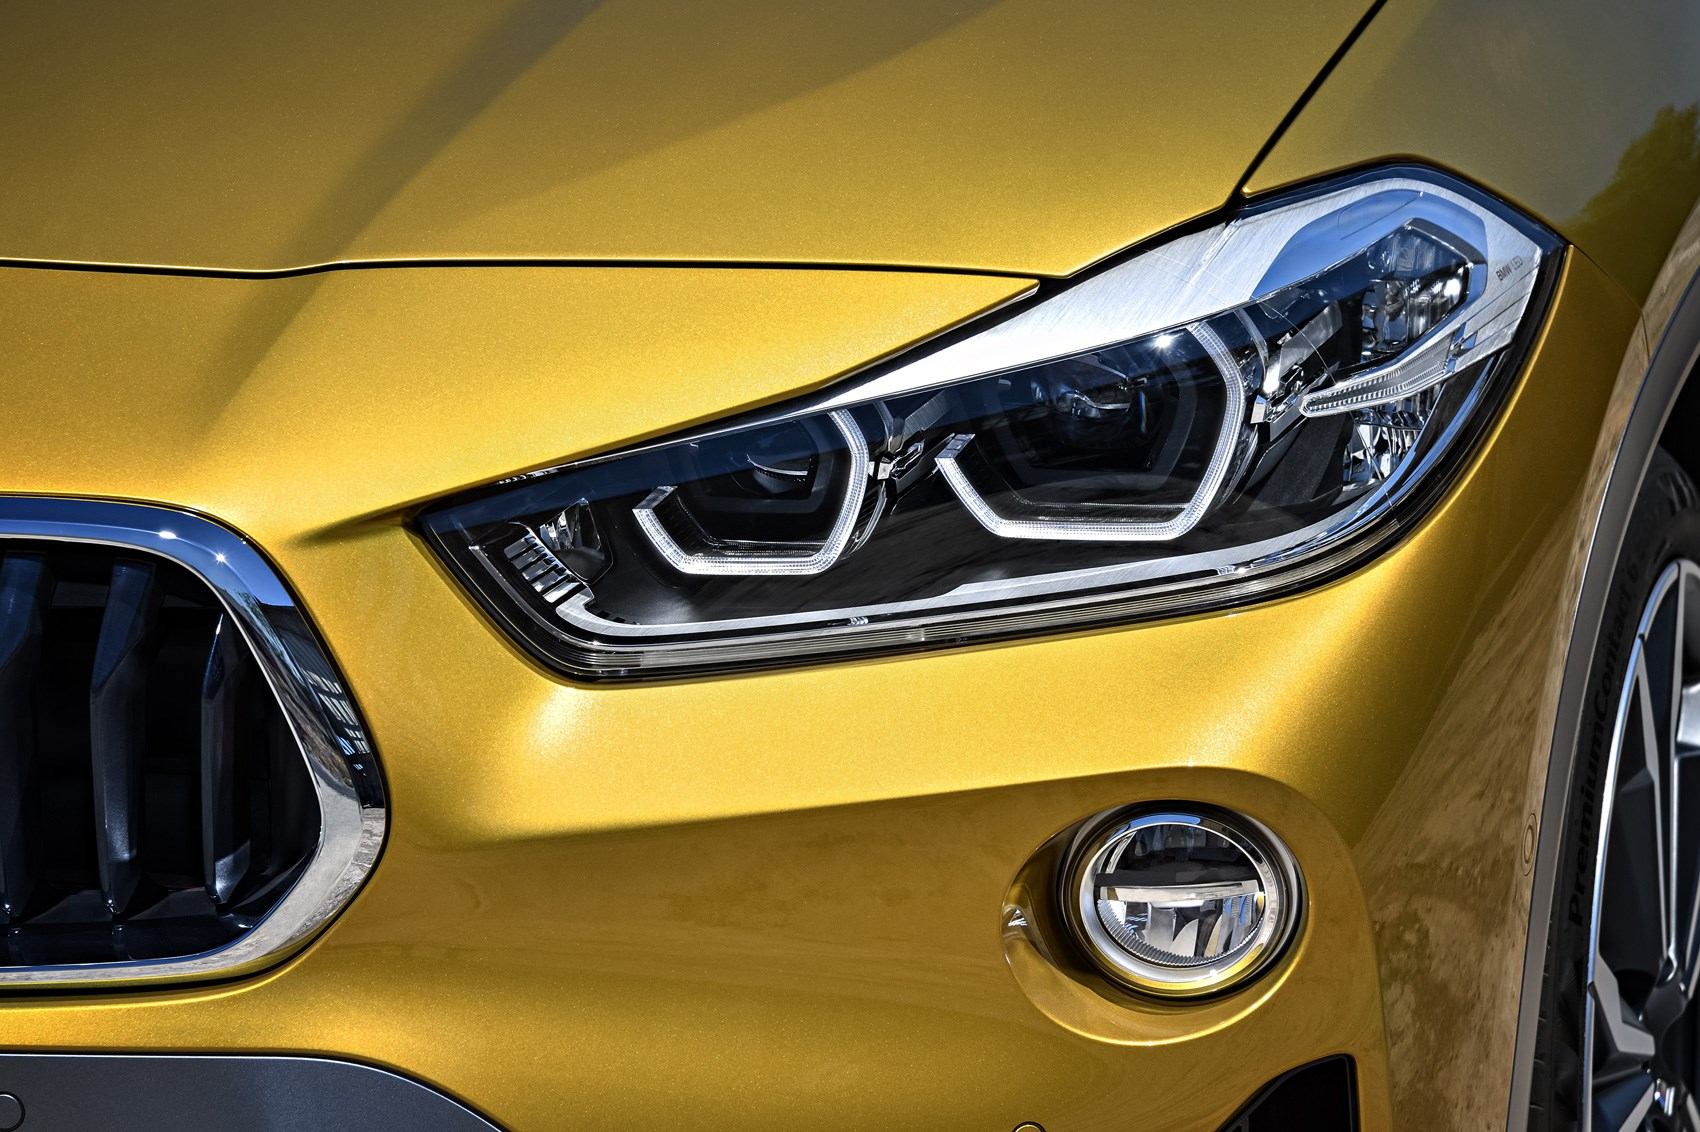 BMW X2 SUV: new crossover dubbed 'the cool X' revealed | CAR